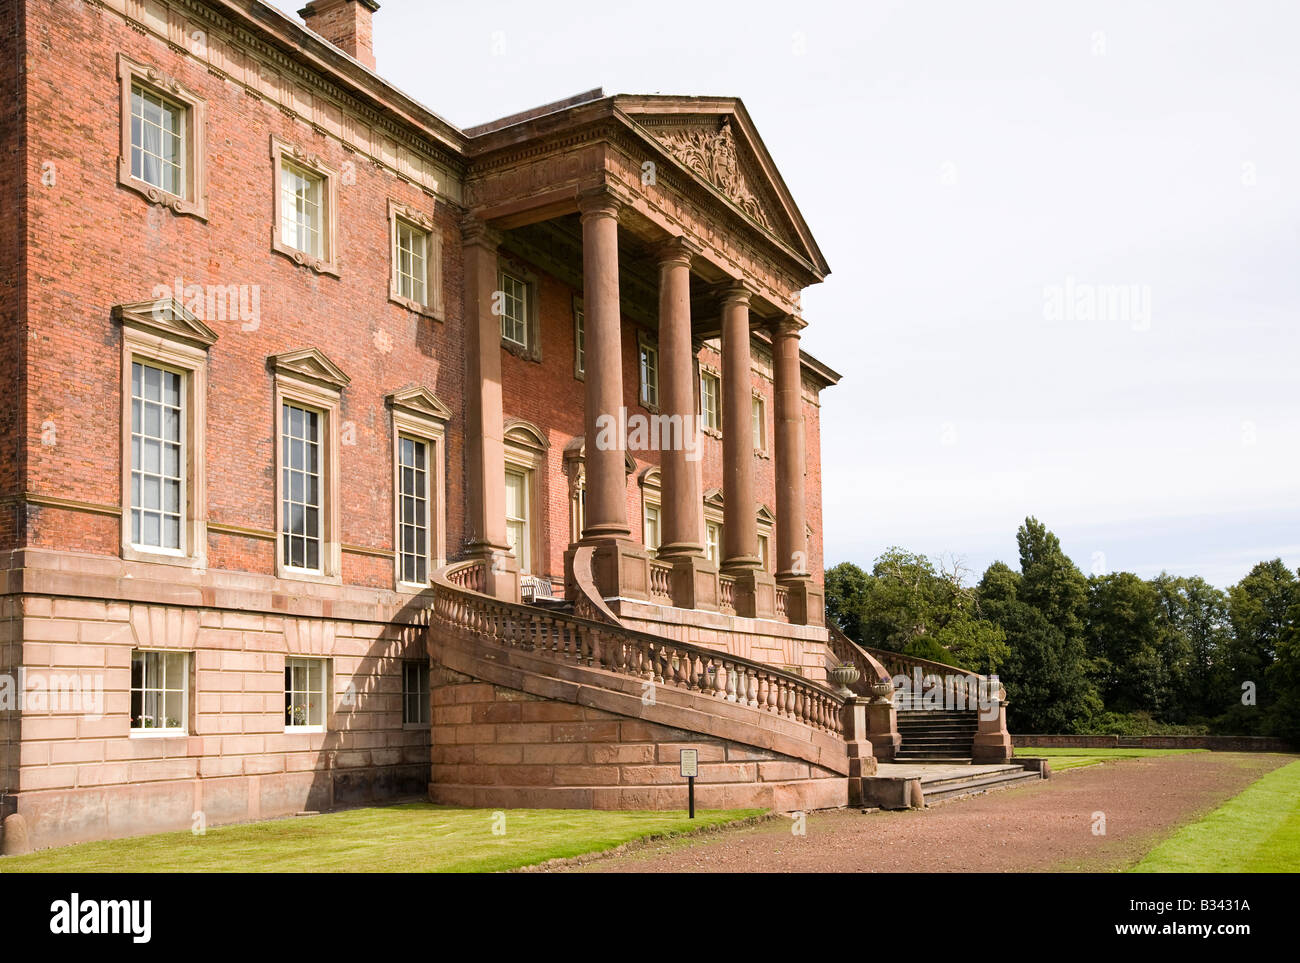 UK Cheshire Knutsford Tabley House 18th csntury mansion designed by John Carr of York 1769 - Stock Image